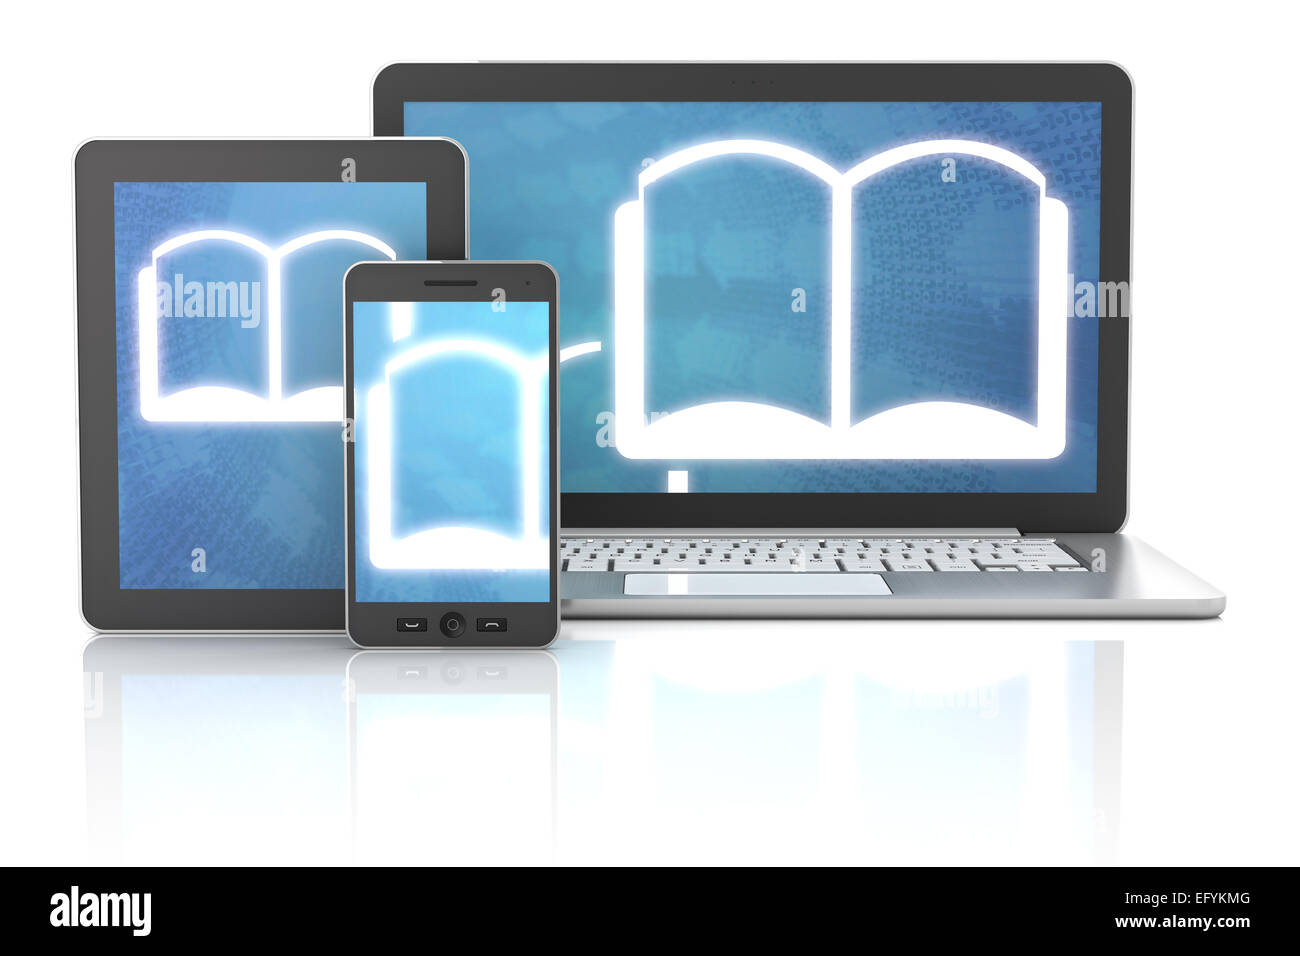 ebook icons on smartphone, digital tablet and laptop, 3d render - Stock Image